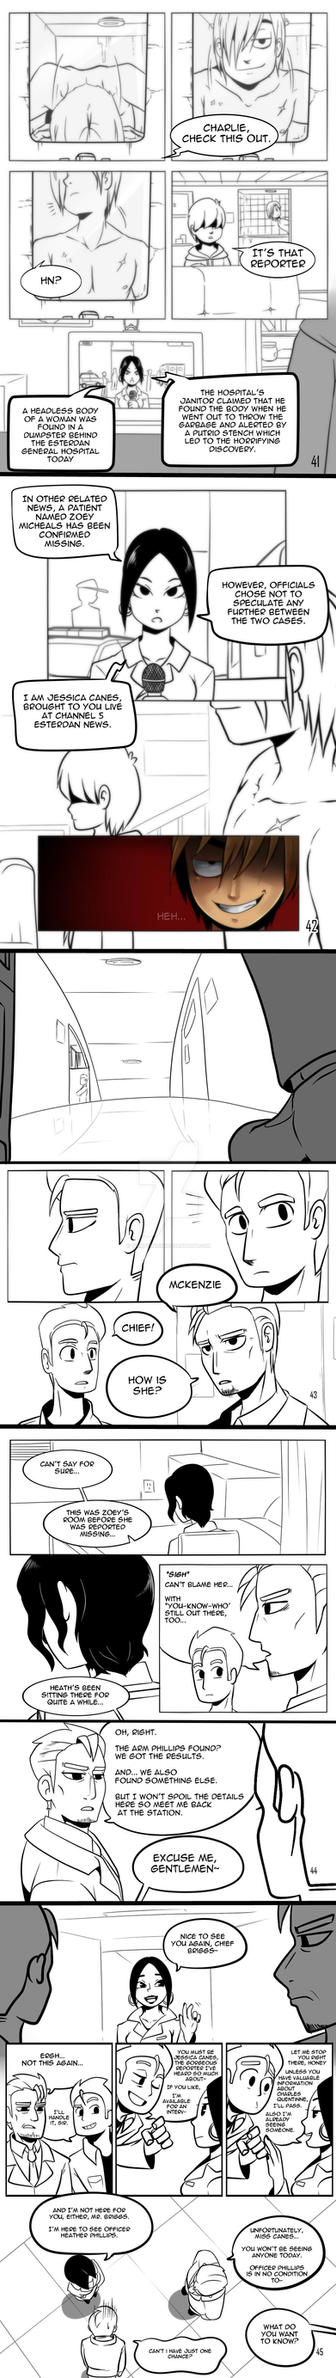 Mr. Charlie 3 pages 41 - 45 by Thirt13nXIII